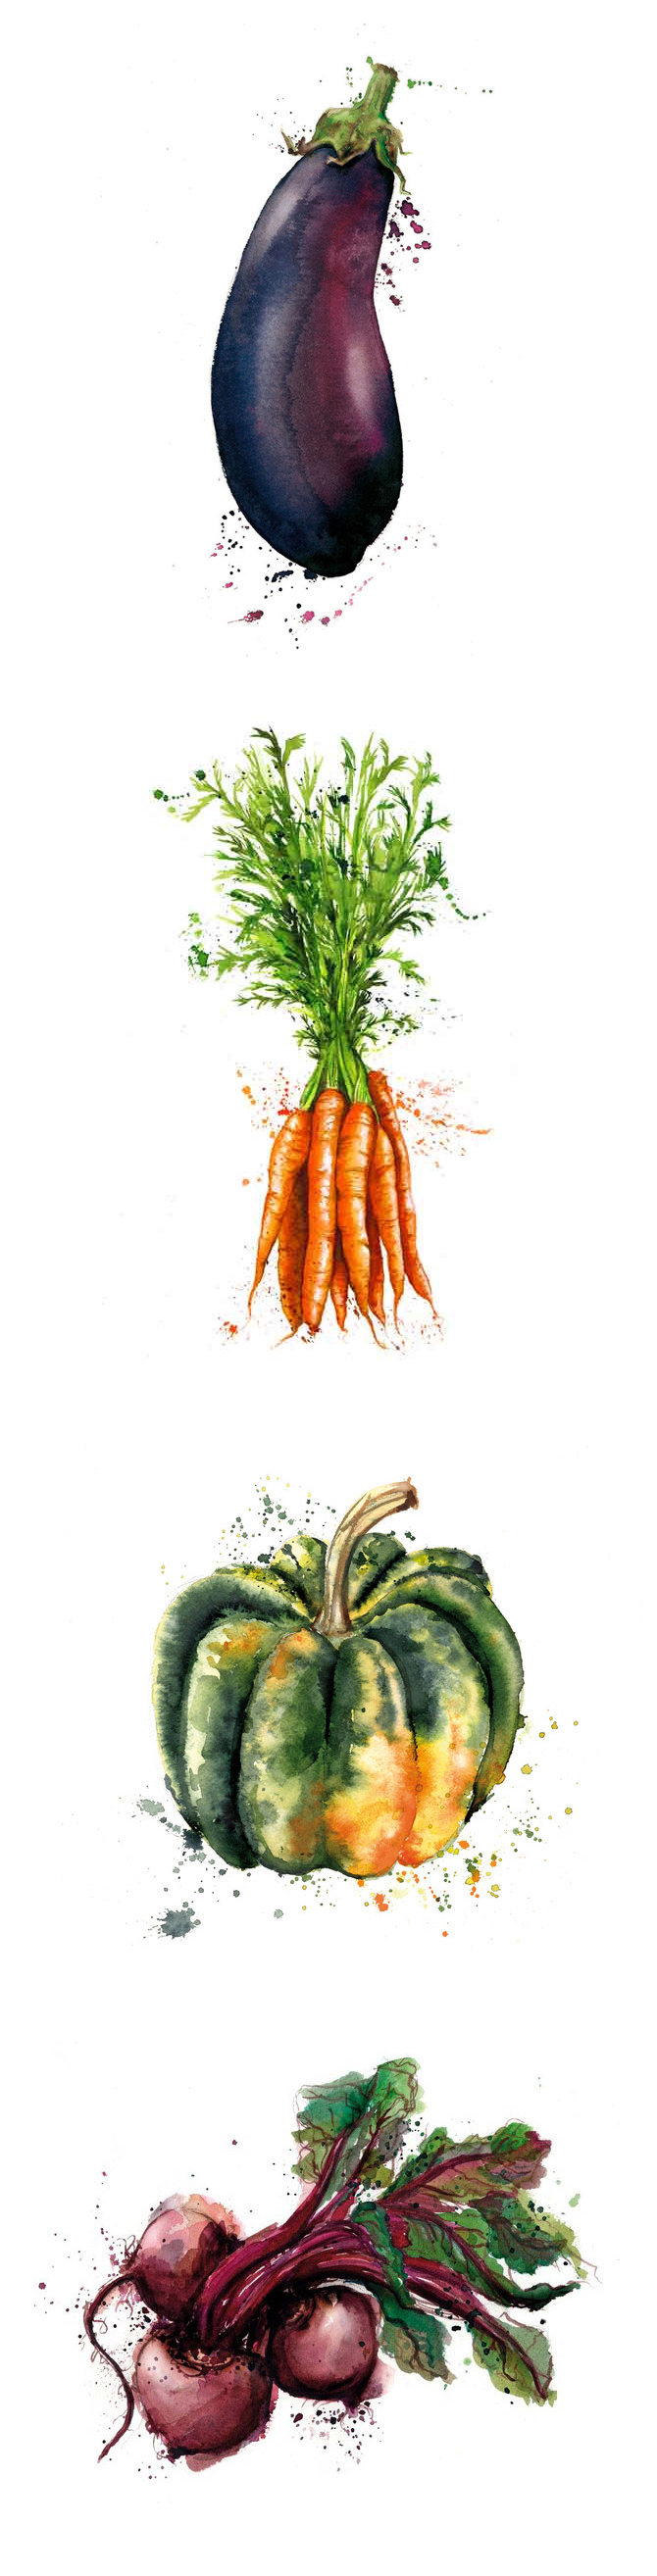 Drawn vegetable chalk Vegetables by disegno / disegno